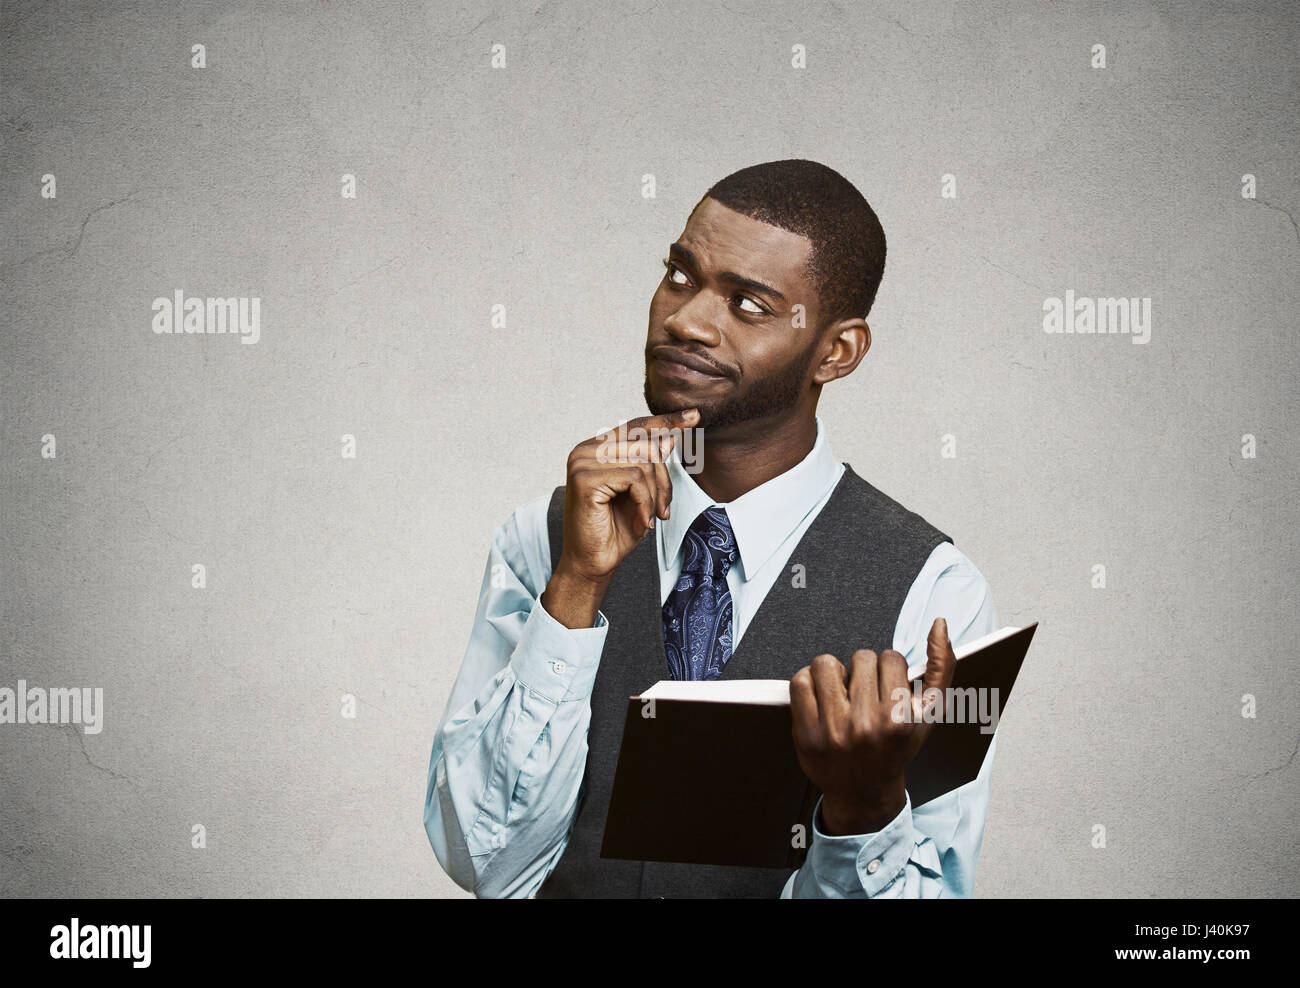 Closeup portrait confused, unhappy serious man holding, reading  book, having many questions, thinking, isolated - Stock Image